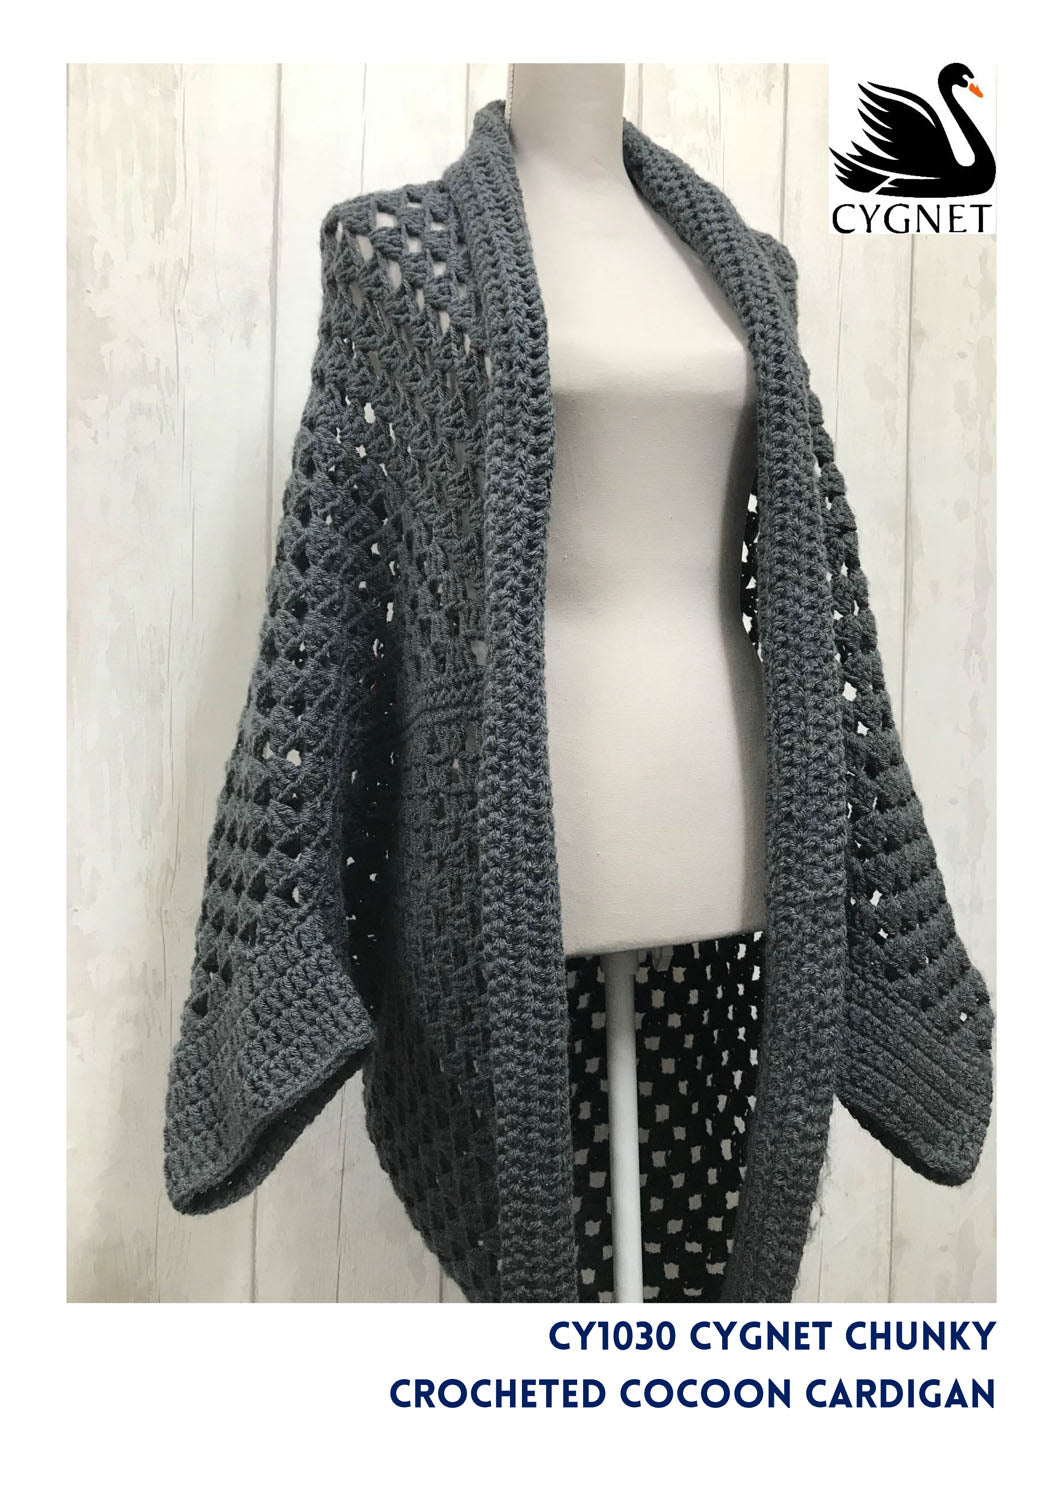 Crocheted Cocoon Cardigan In Cygnet Chunky Yarn And Pattern